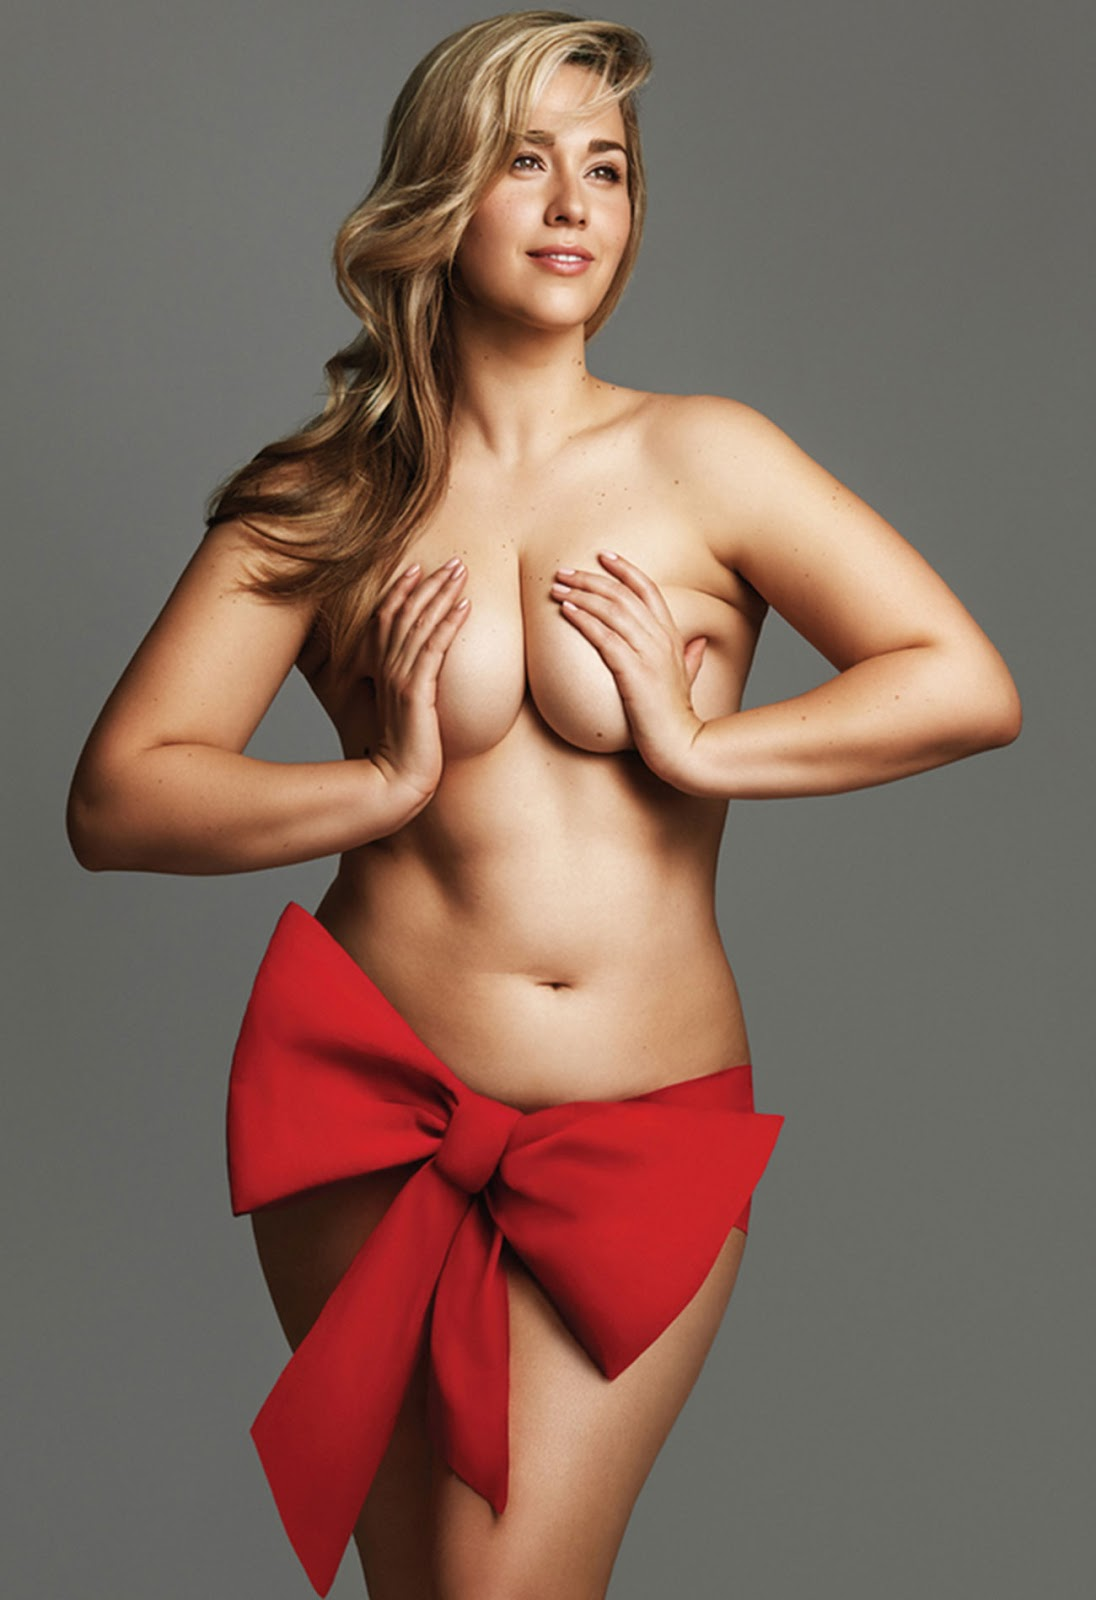 nude chubby woman photo